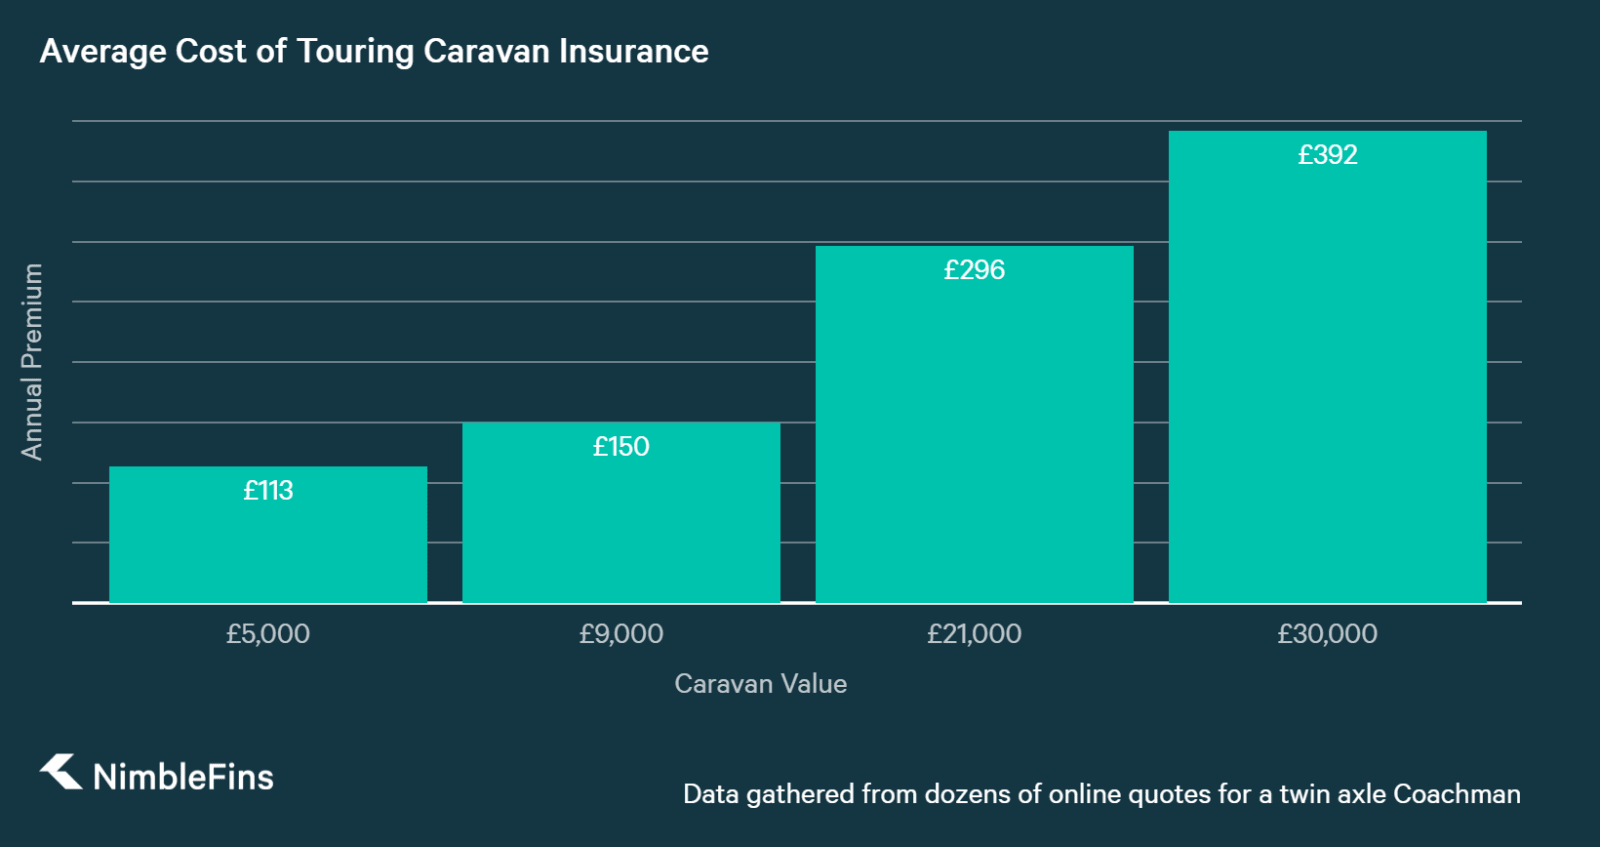 Touring Caravan insurance costs